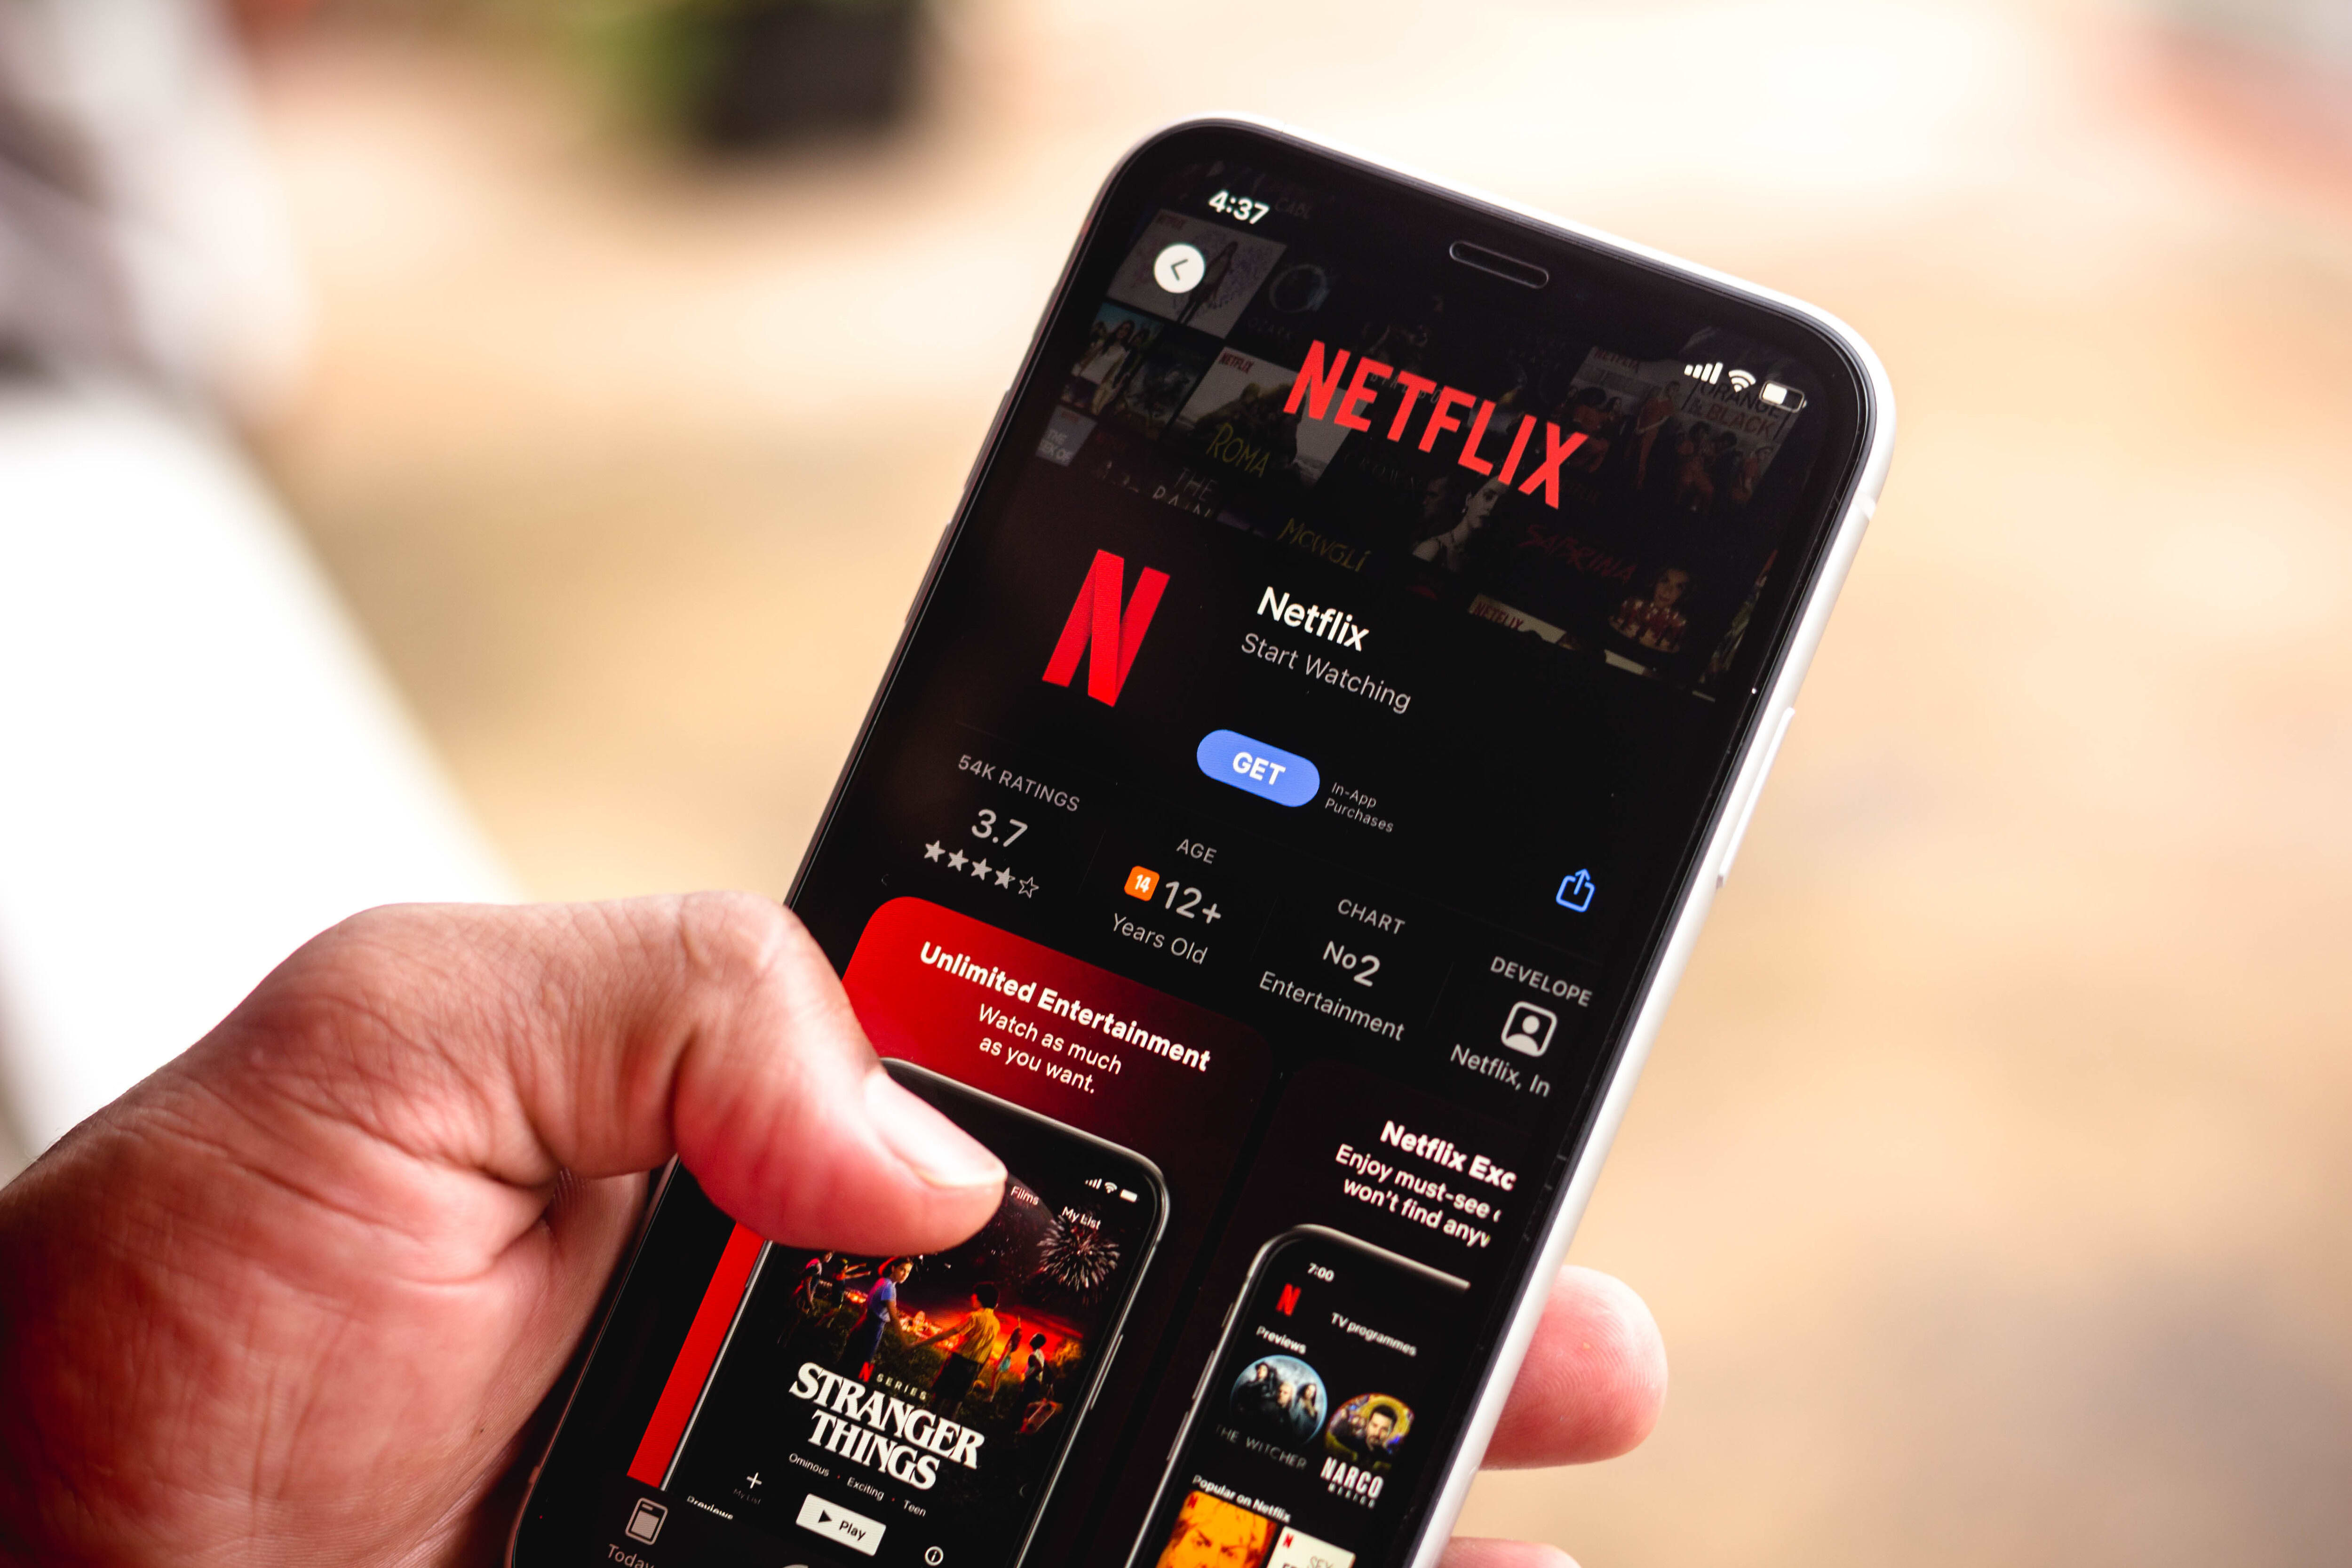 Netflix Execs Explain Why They're Getting Into Video Games — to Learn From Users